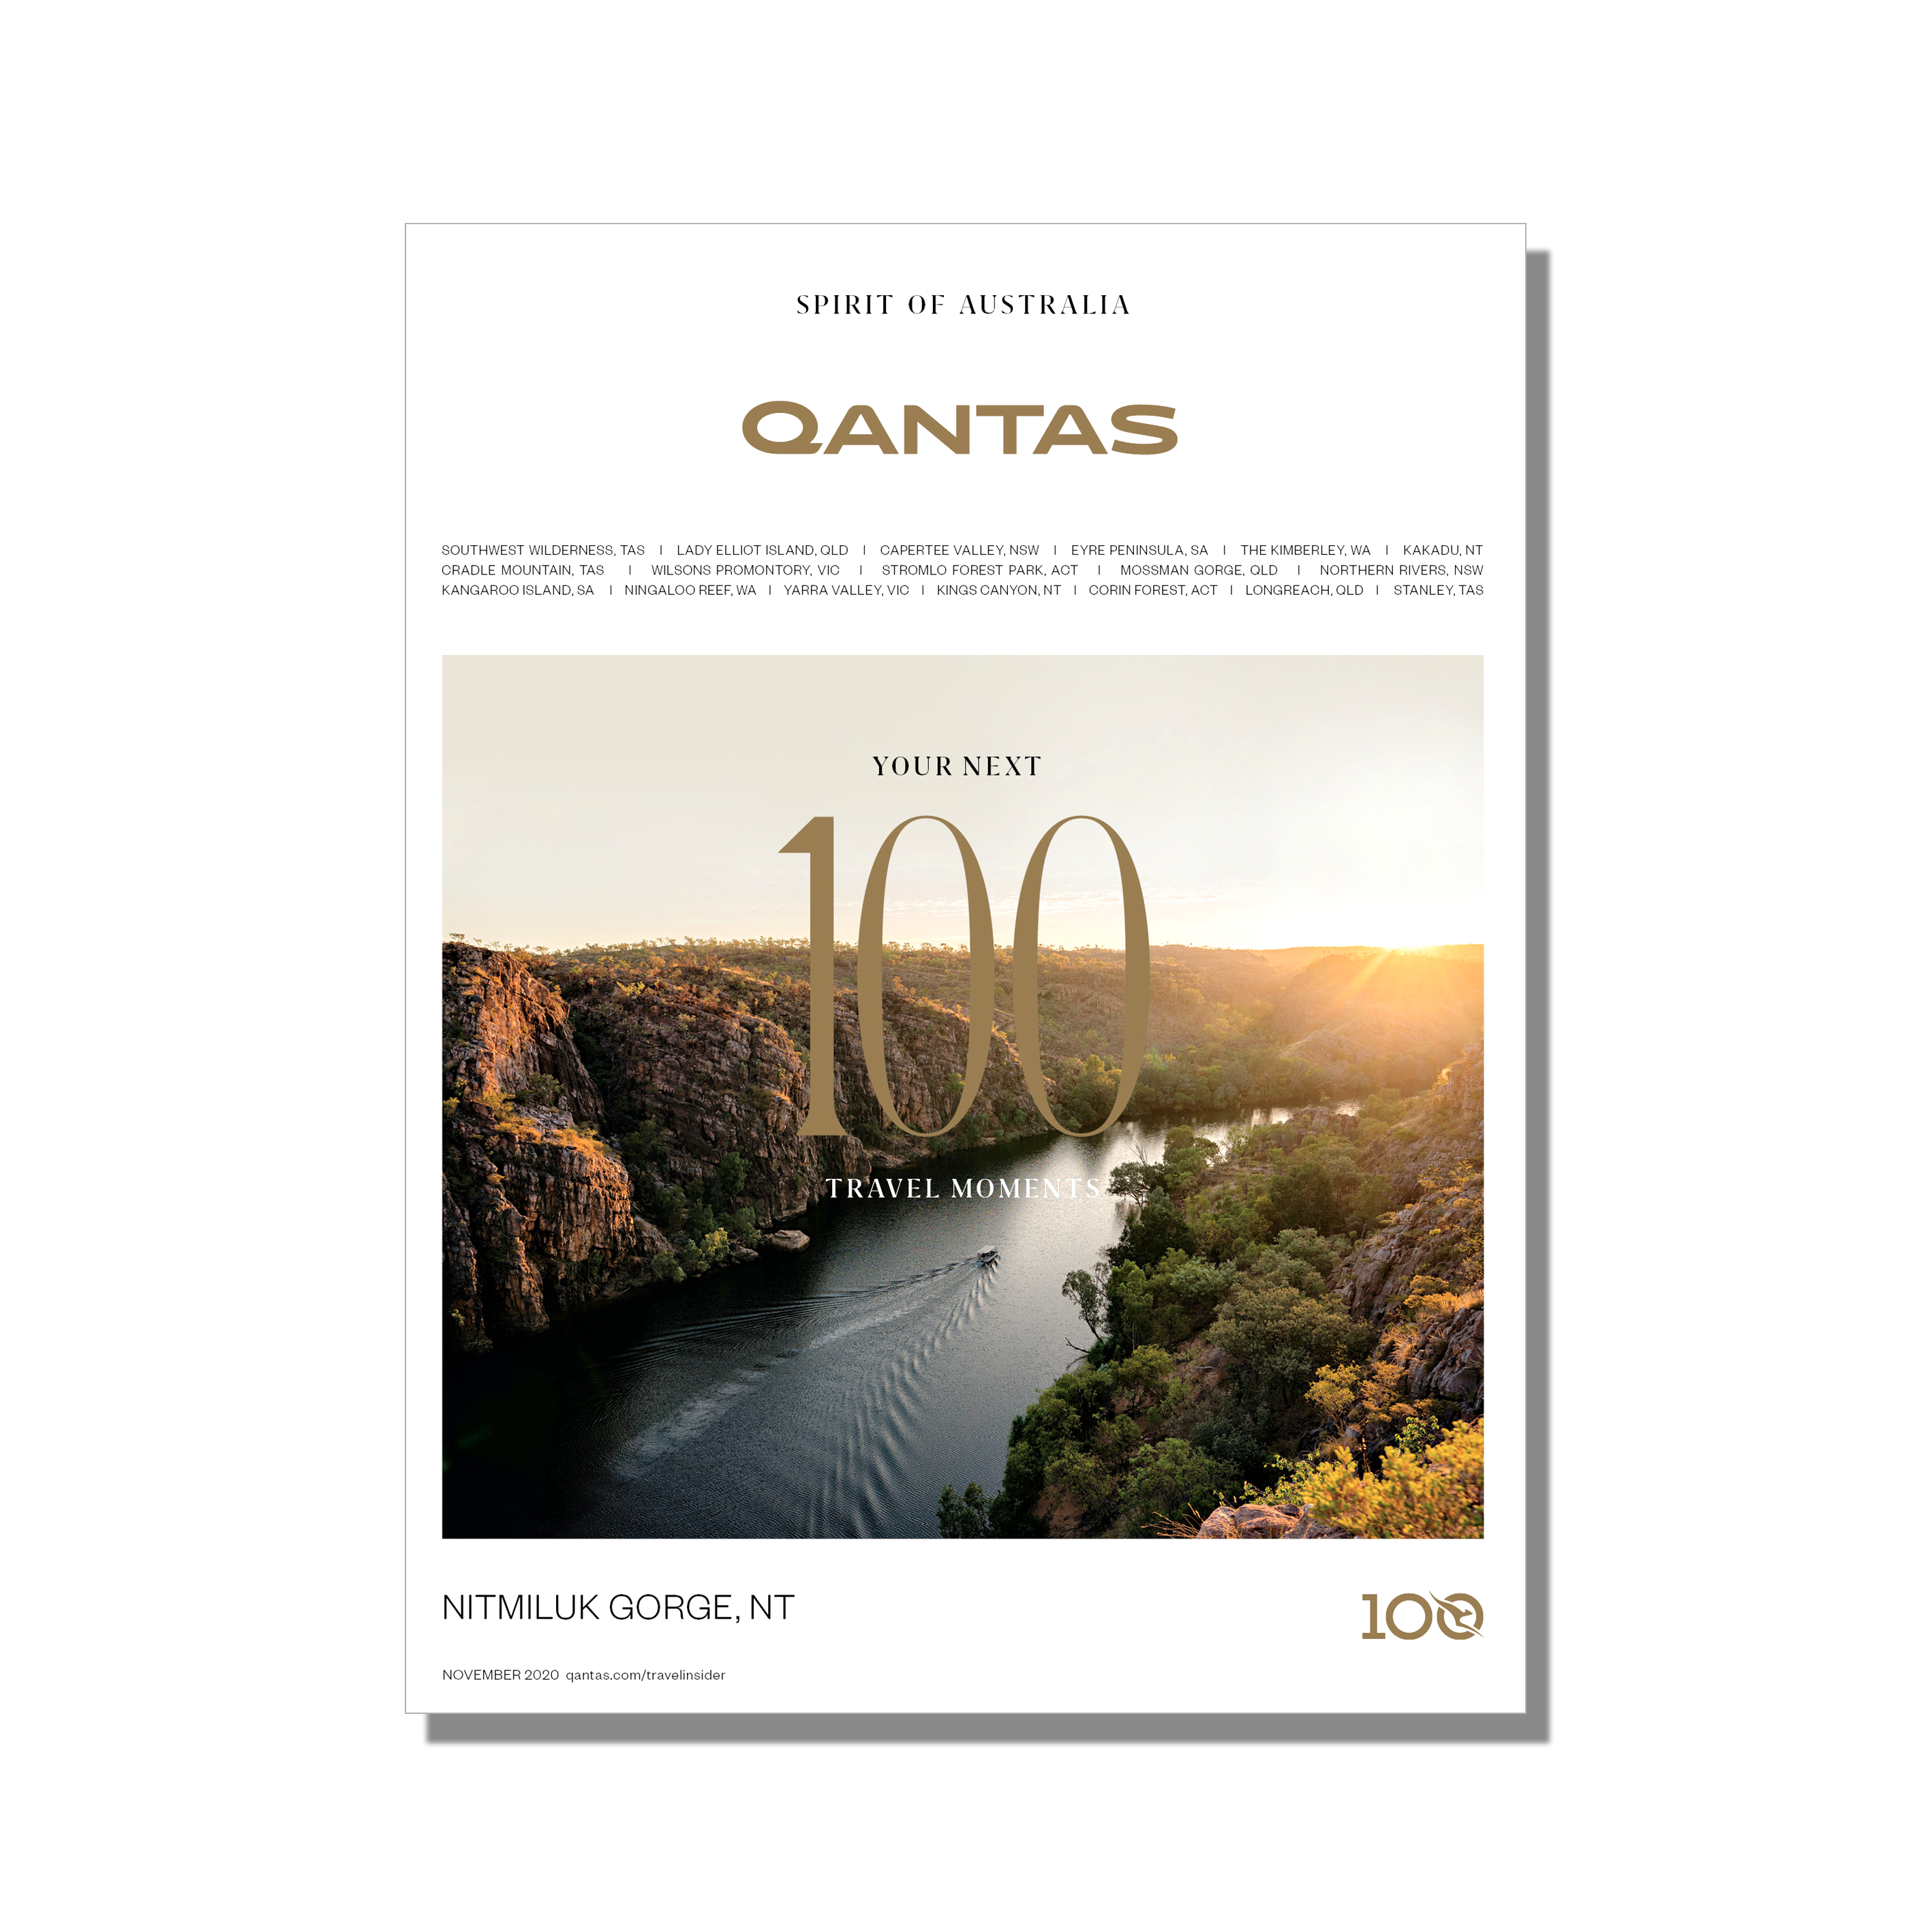 November 2020 issue of Qantas magazine